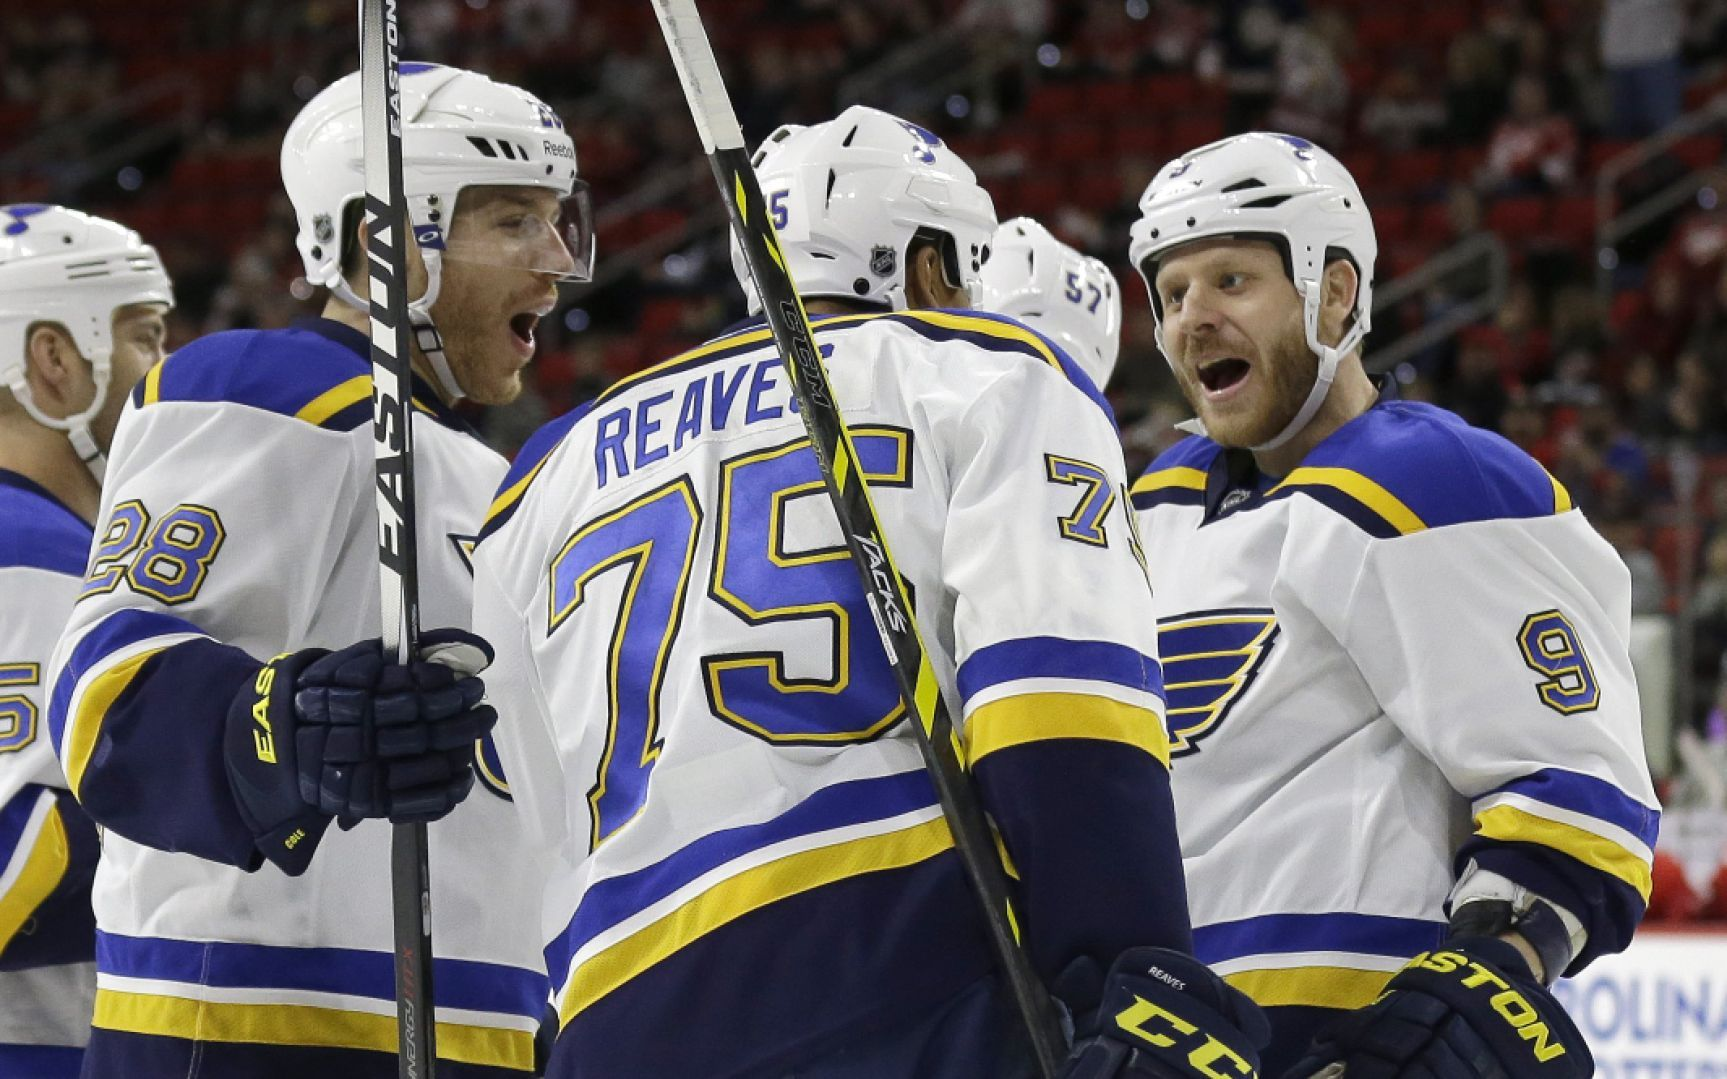 Blues win in shootout again